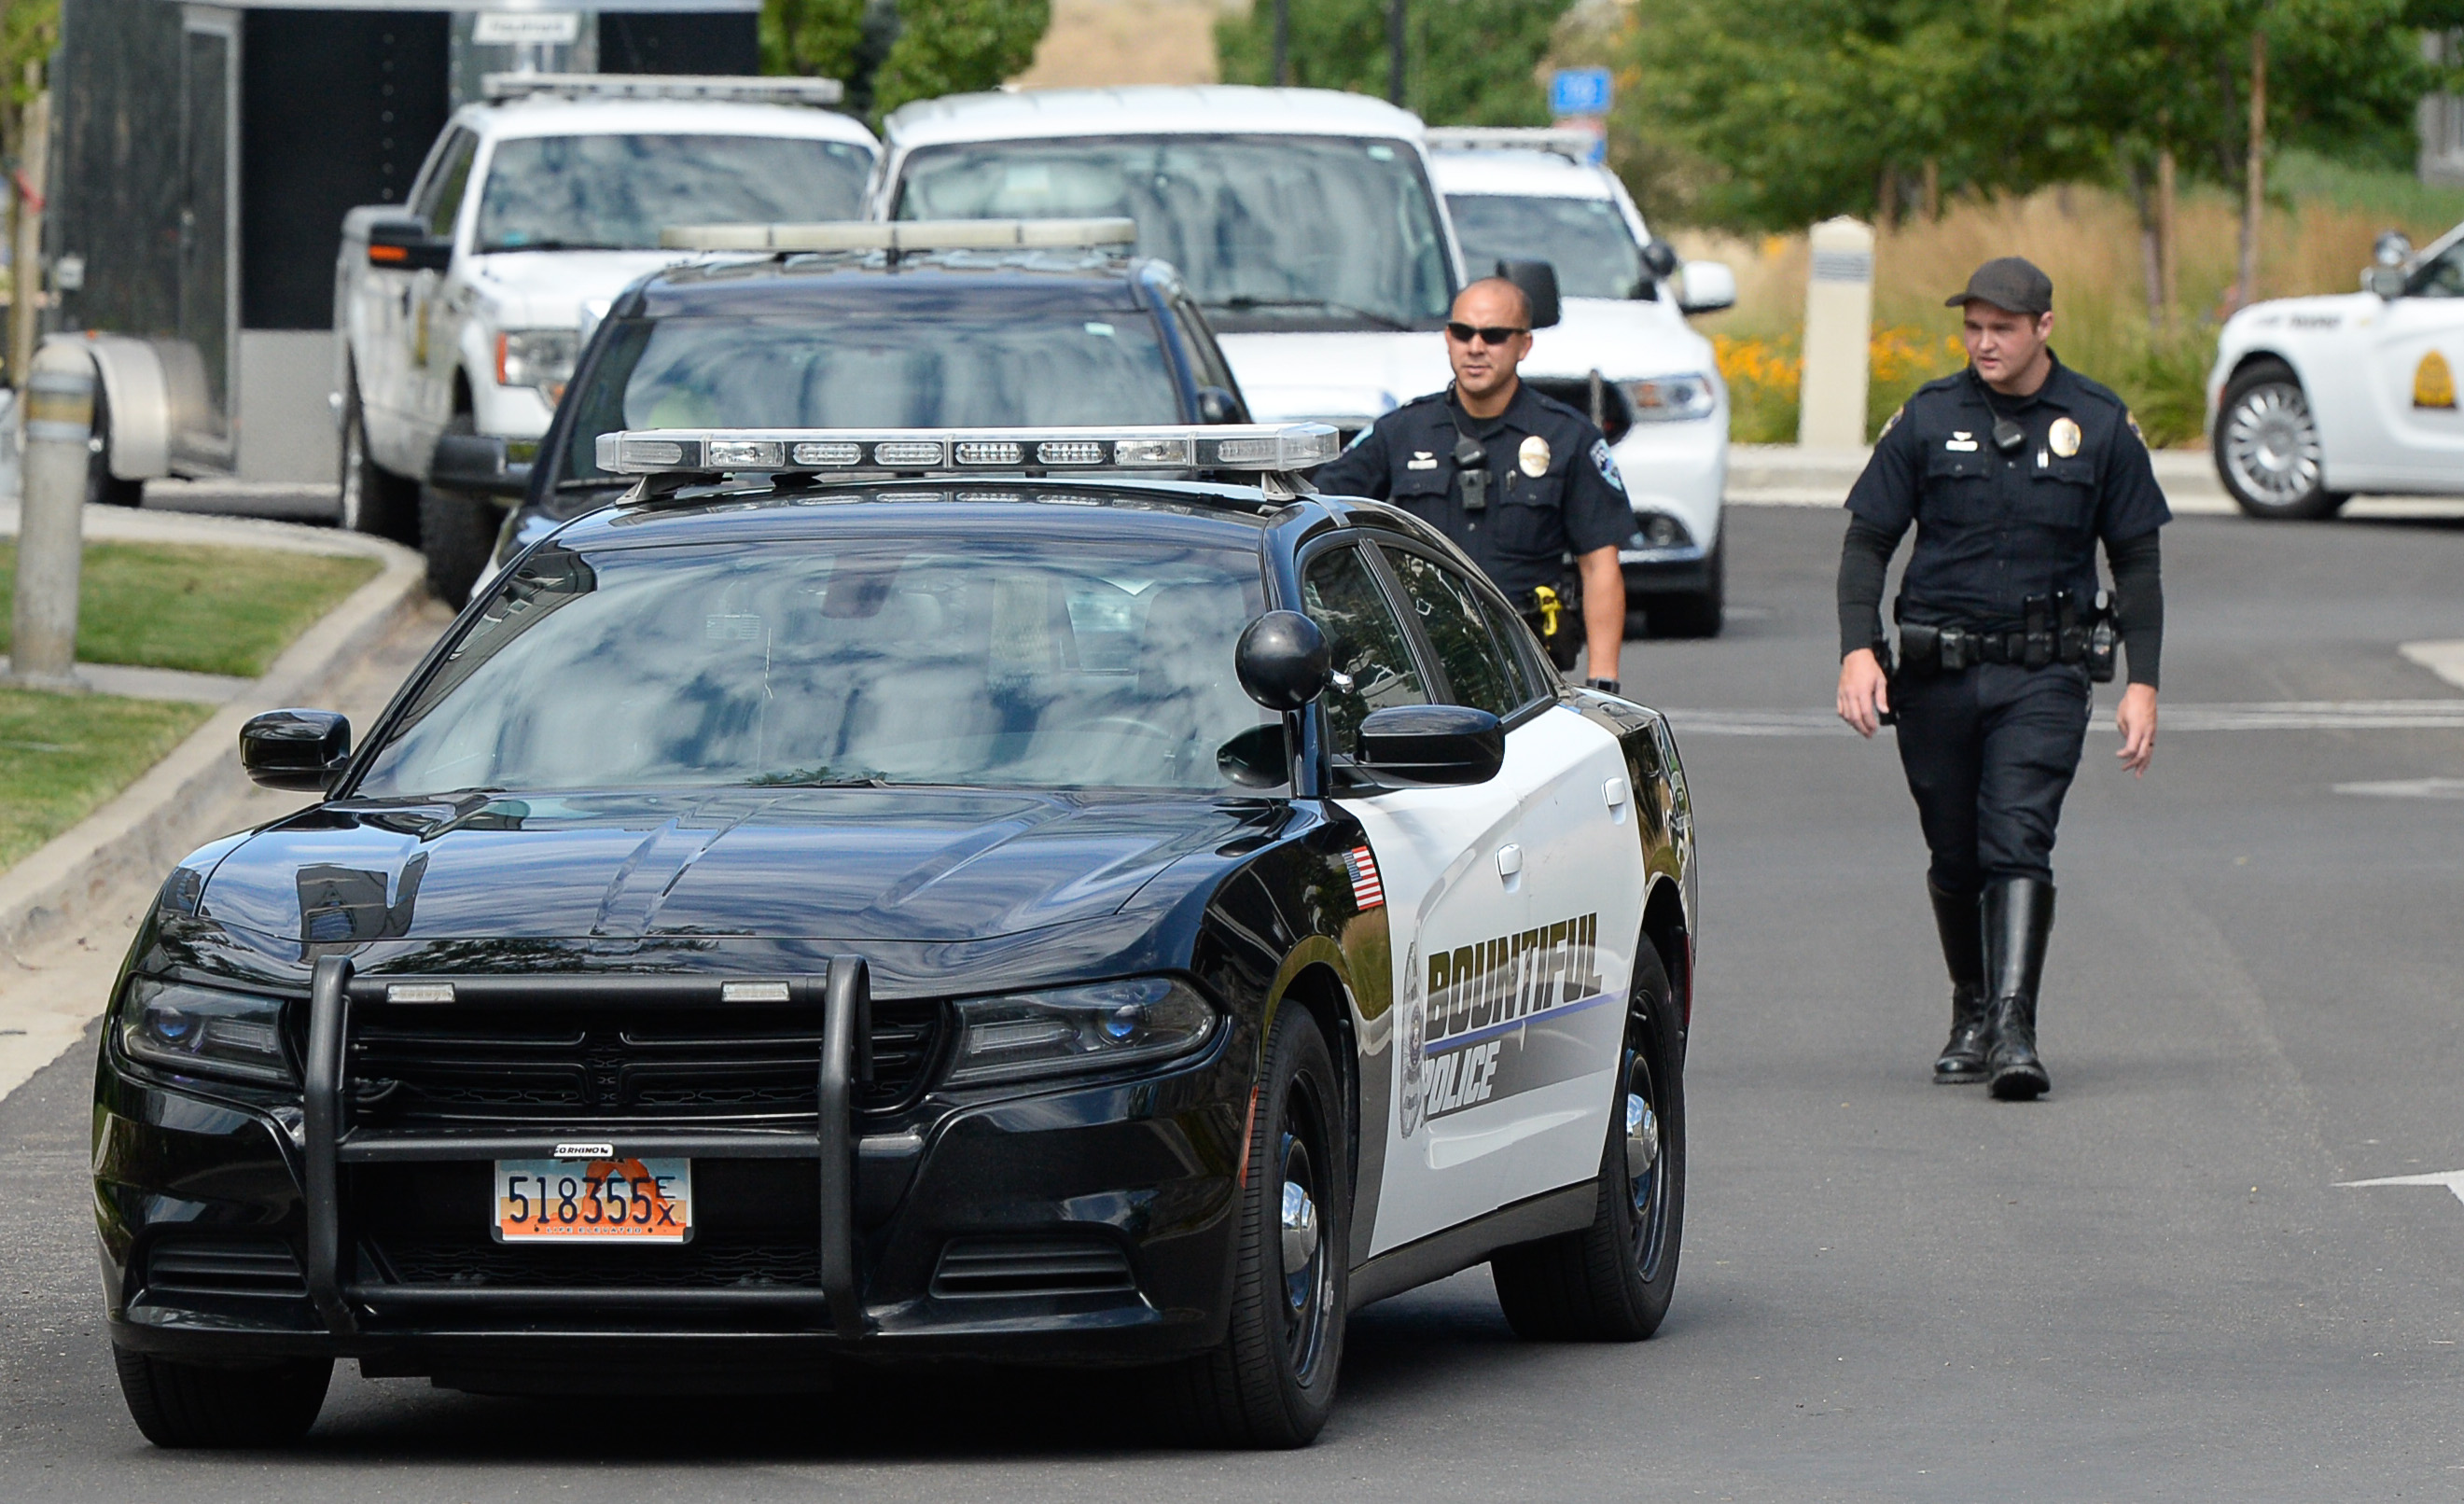 (Francisco Kjolseth  |  The Salt Lake Tribune)  Police gather at the scene where activists staged a protest against a private prison company with contracts to hold undocumented immigrants on Thursday, July 12, 2018, at the headquarters of Management and Training Corporation in Centerville.